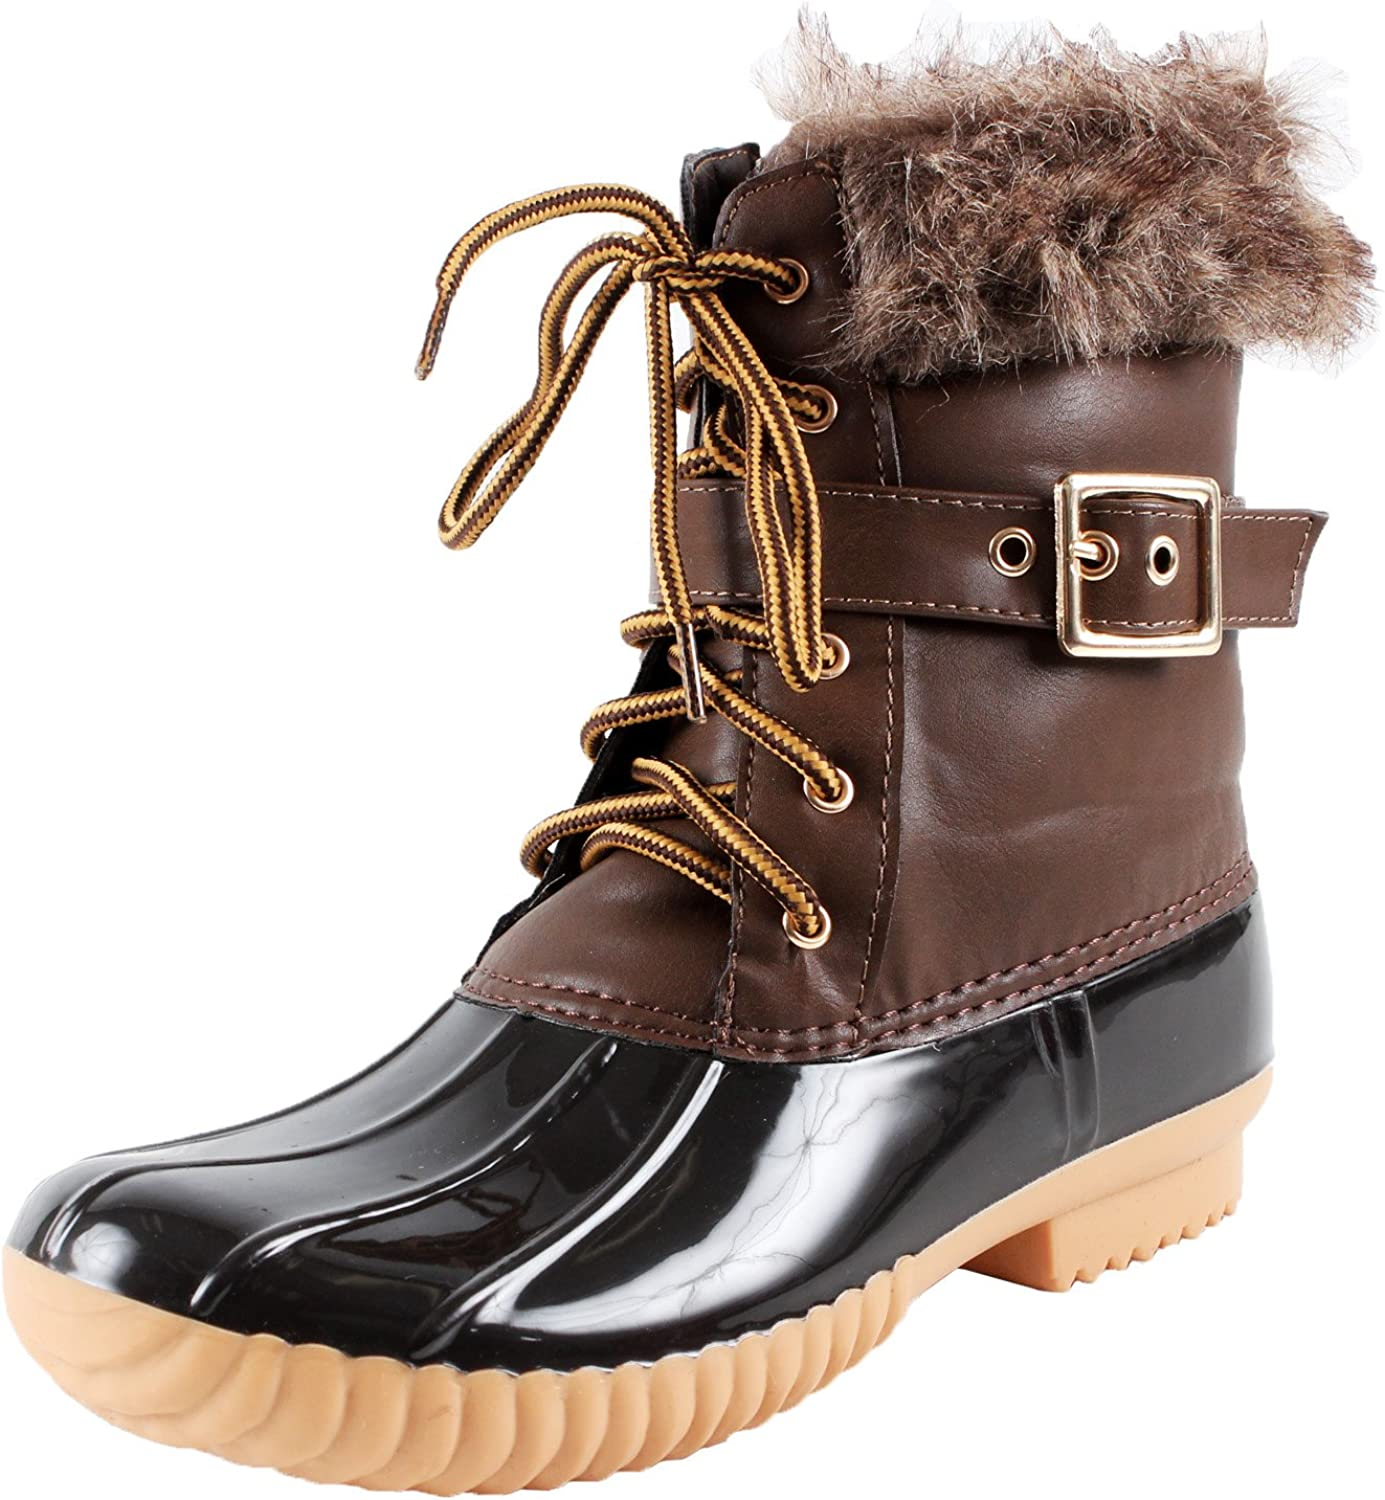 Nature Breeze Duck-01 Women's Chic Lace Up Buckled Duck Waterproof Snow Boots